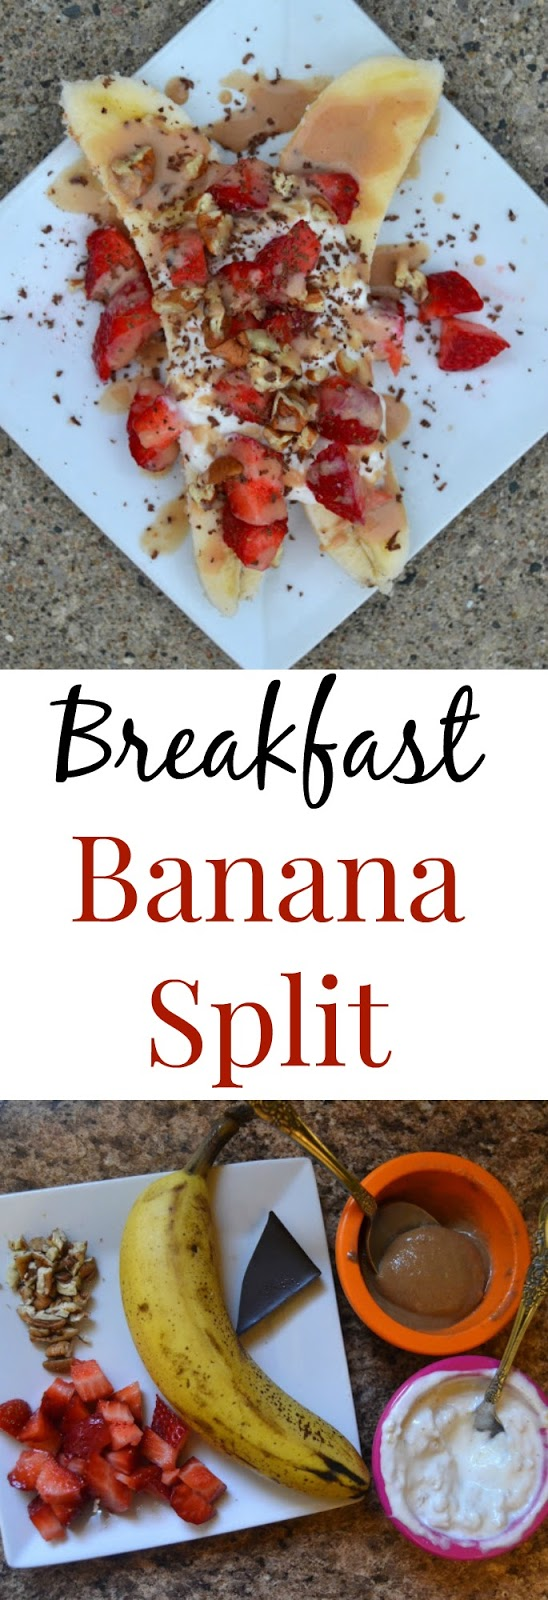 Breakfast Banana Split- all the flavors of your banana split but healthy enough to eat for breakfast! www.nutritionistreviews.com